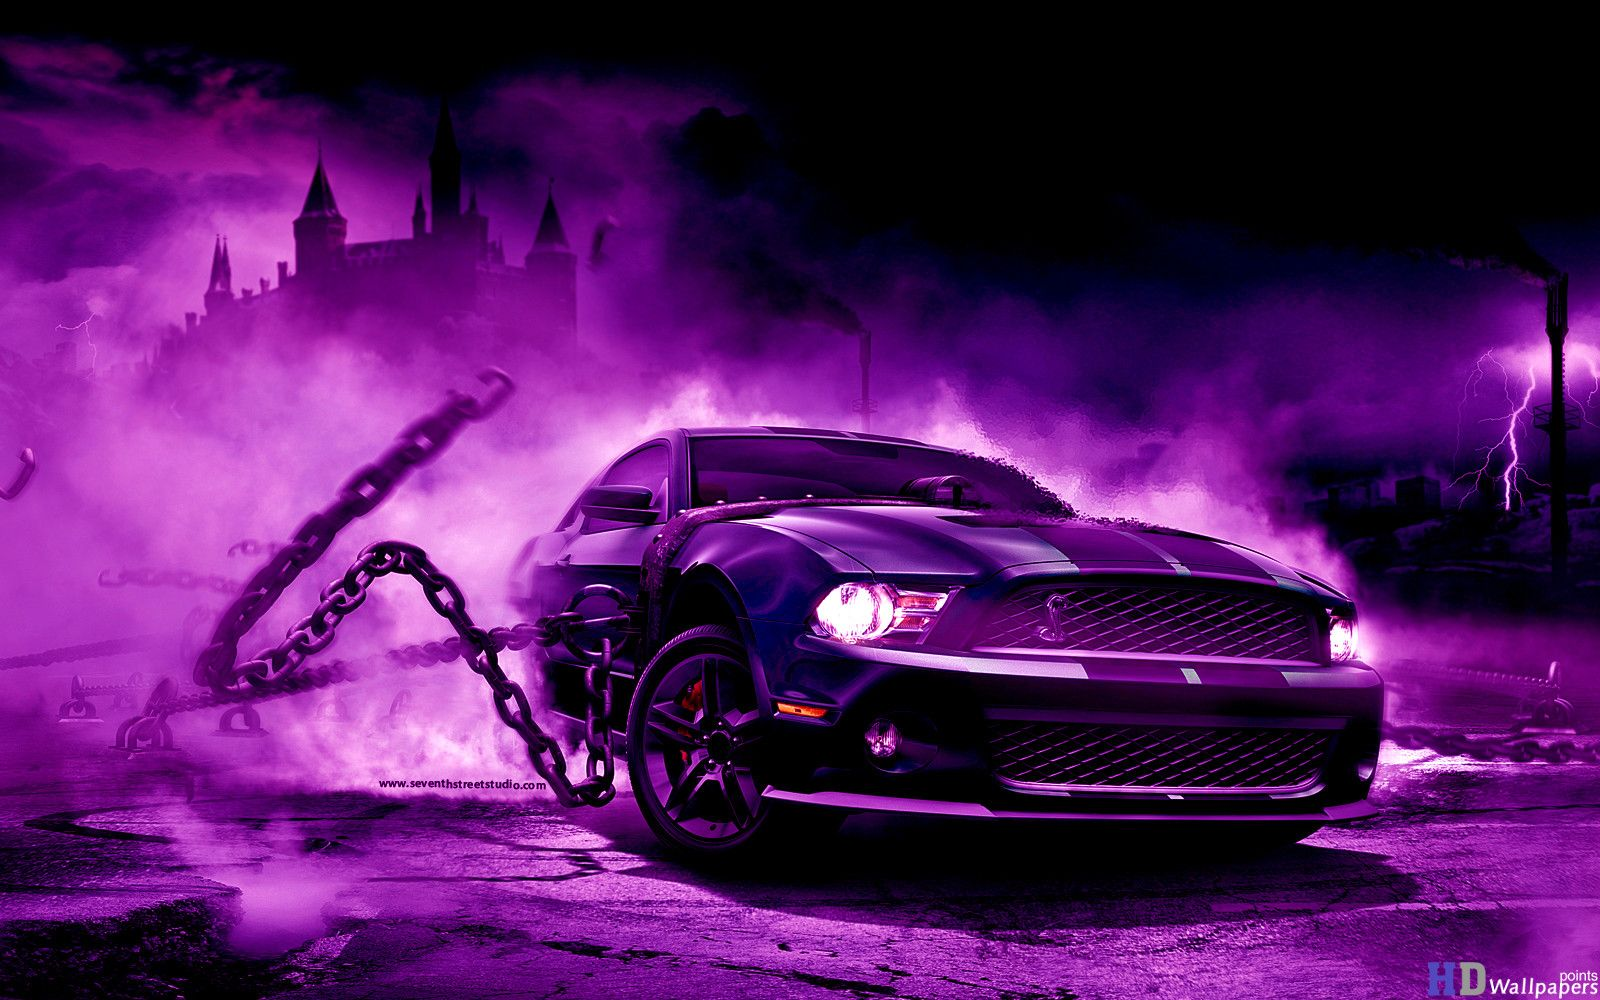 Cars Hd Wallpaper For Desktop: Cool Car 3d Wallpapers HD Background Desktop #14500